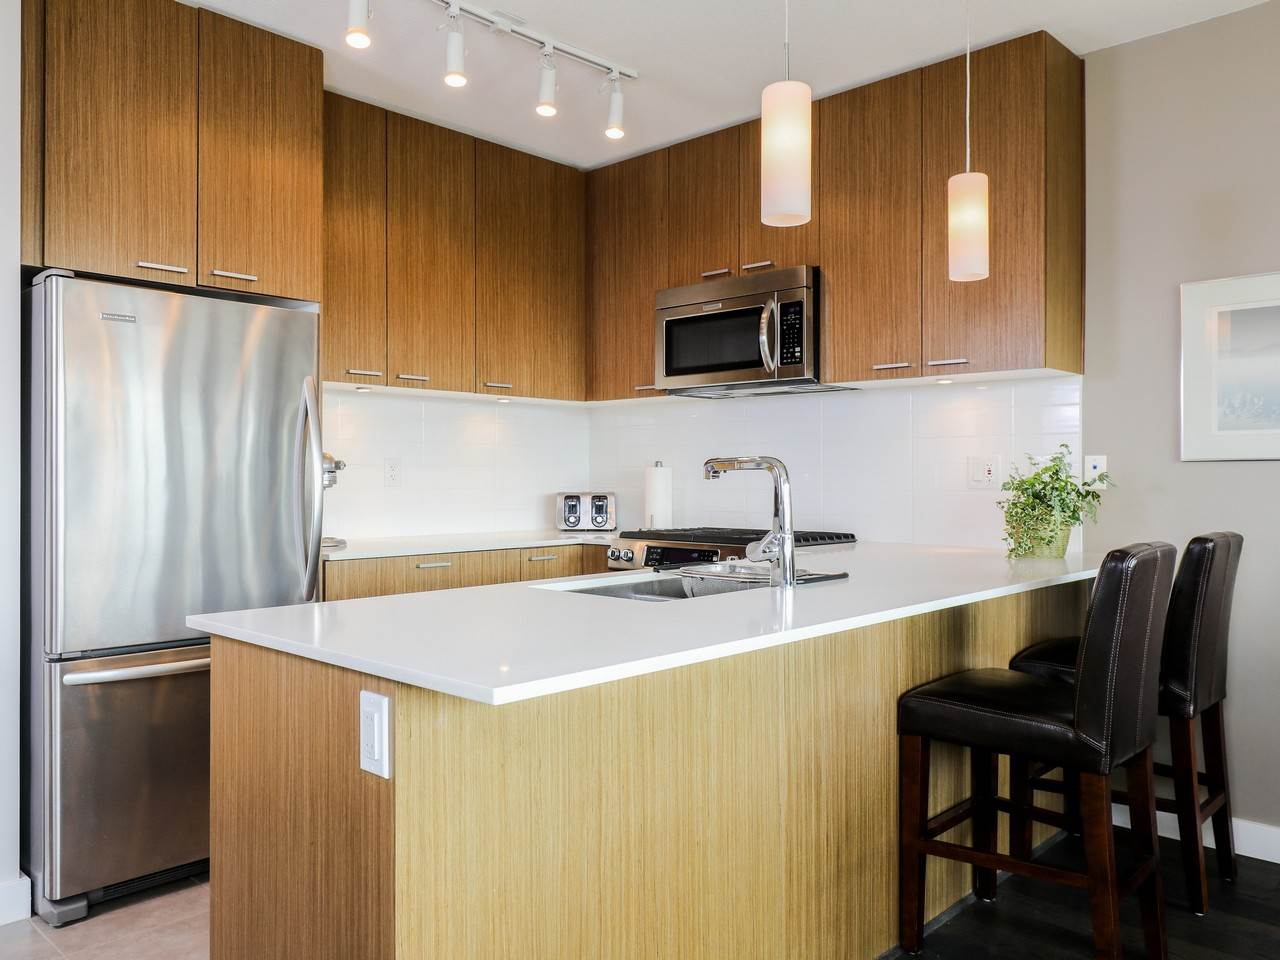 Condo Apartment at 415 1330 MARINE DRIVE, Unit 415, North Vancouver, British Columbia. Image 2